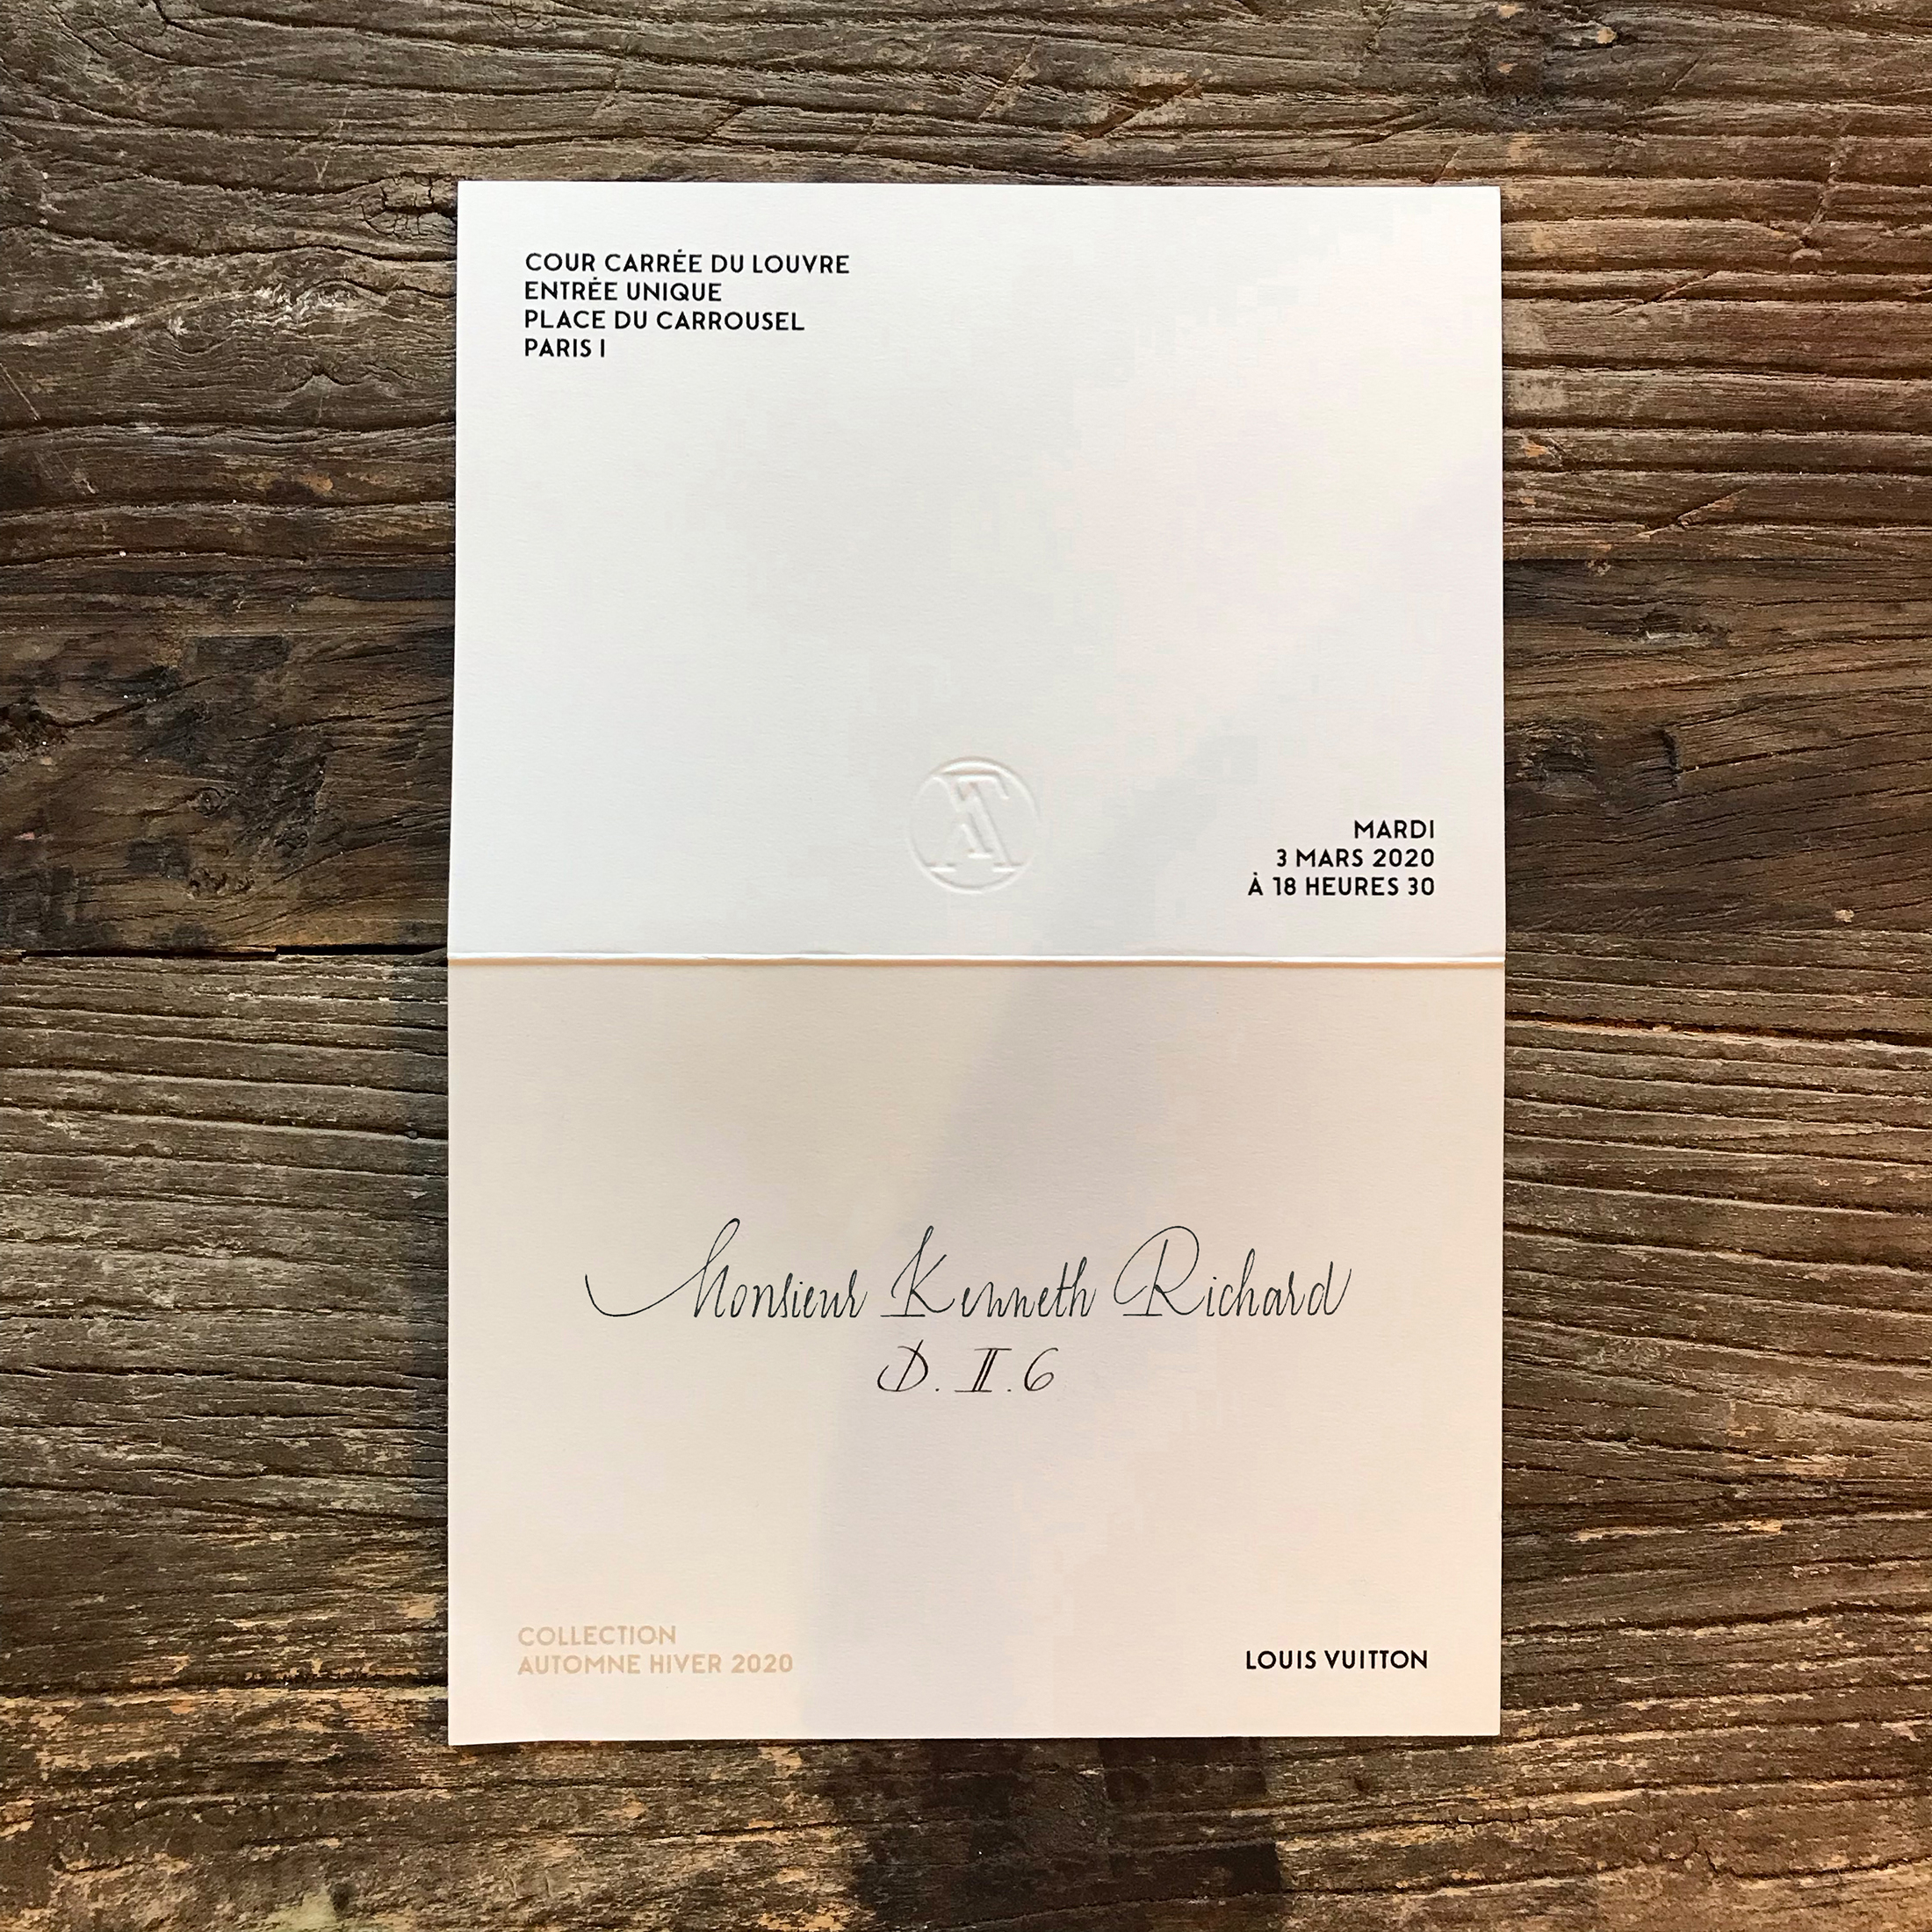 Women's Fashion Show Invitations Photos from Fall 2020